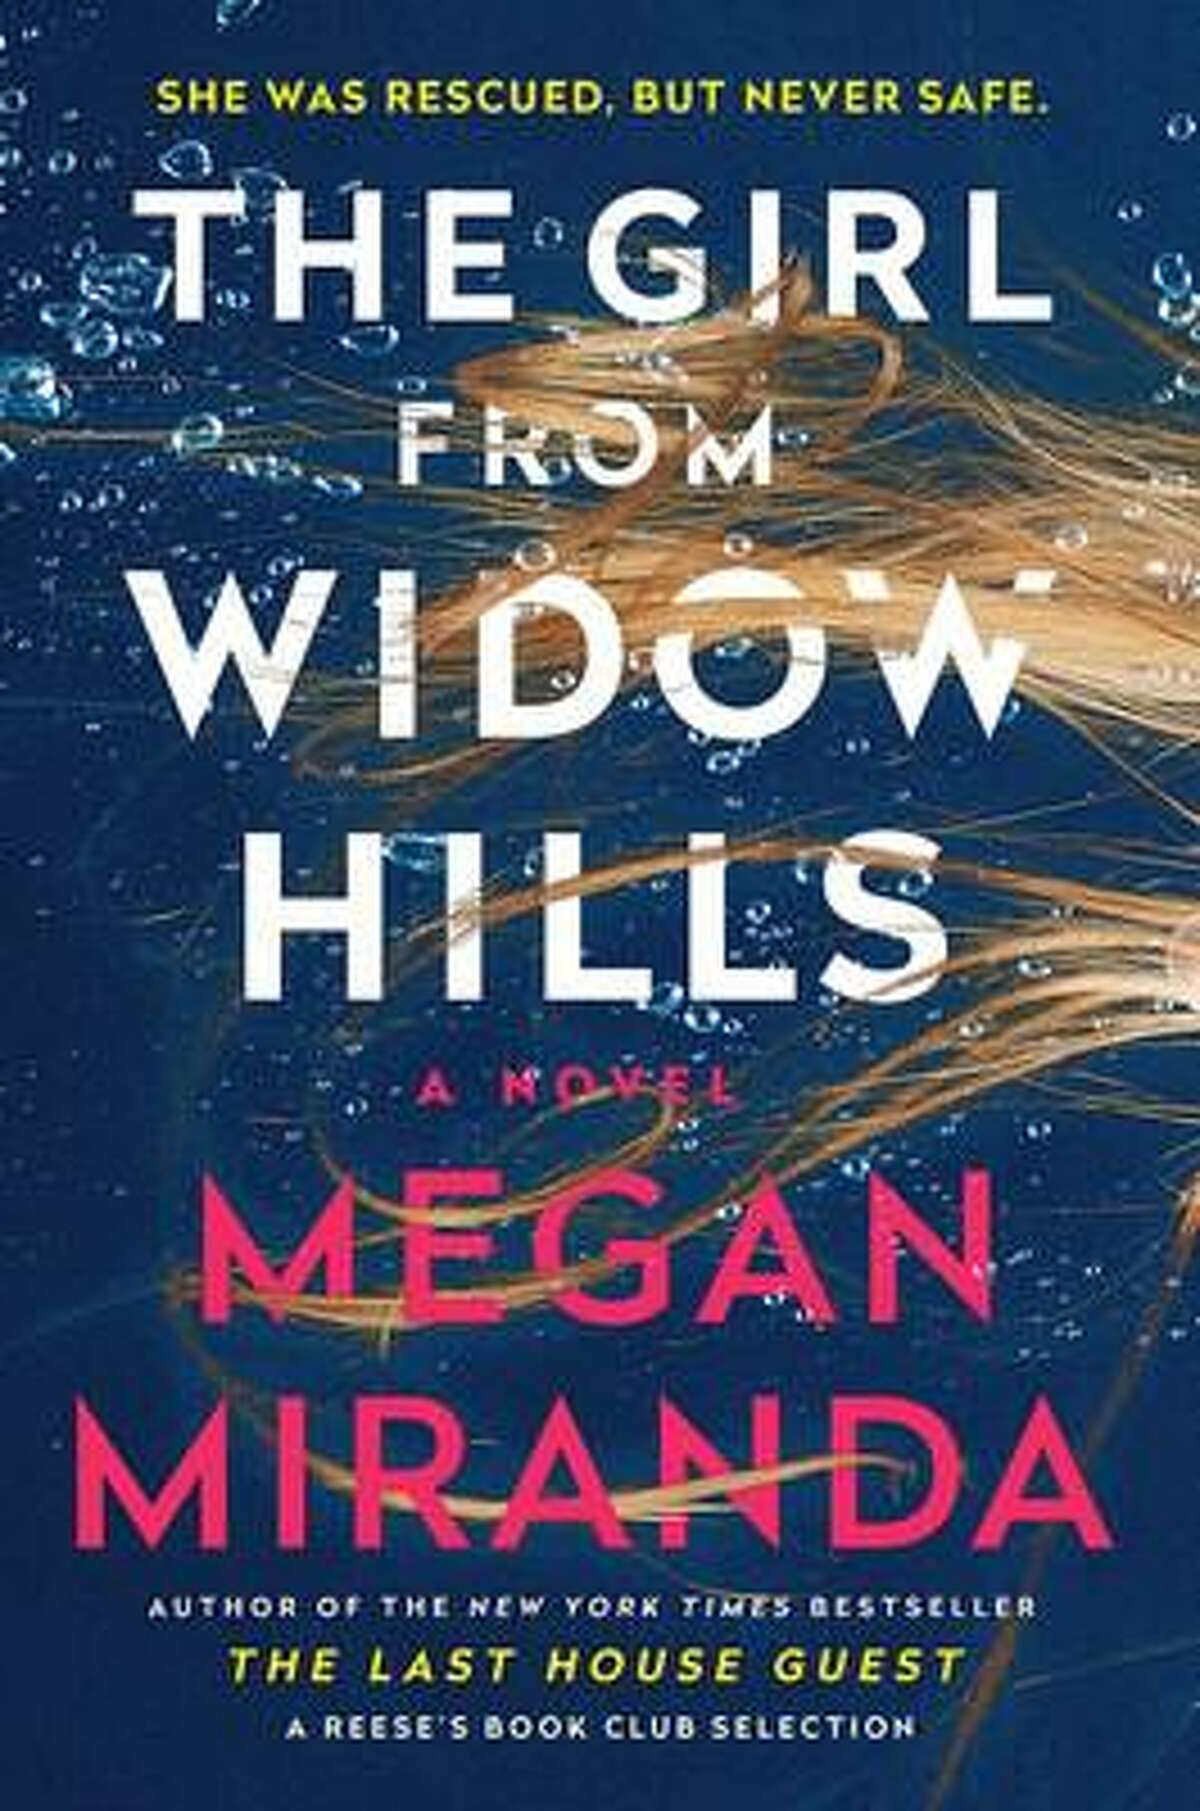 """Megan Miranda's new book """"The Girl from Widow Hills"""" will be published on June 23."""